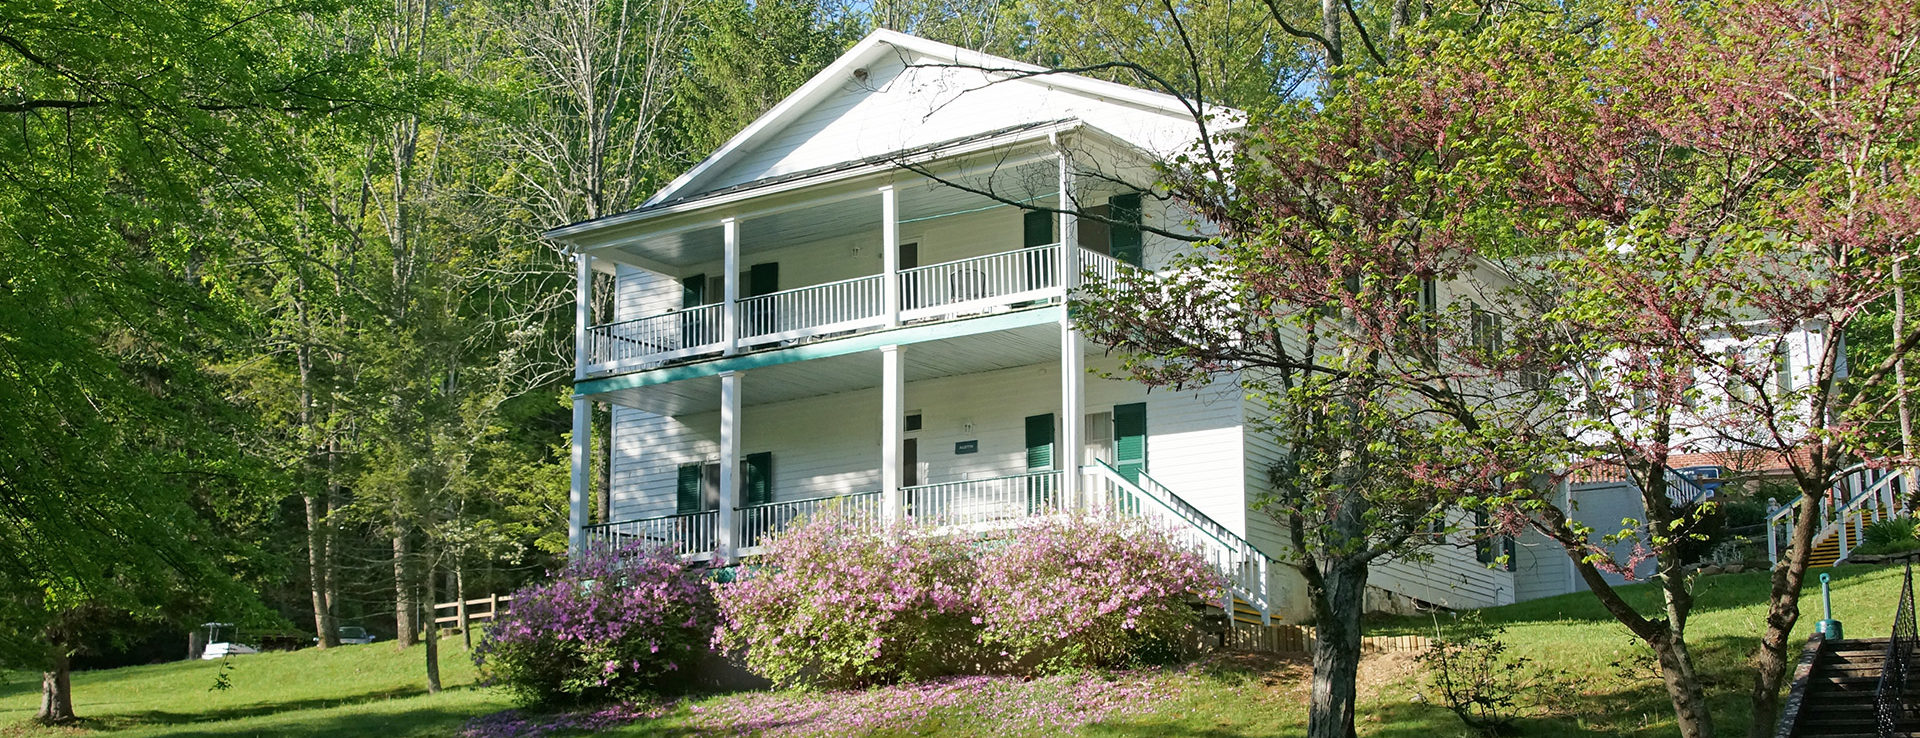 The Austin Cottage at Capon Springs